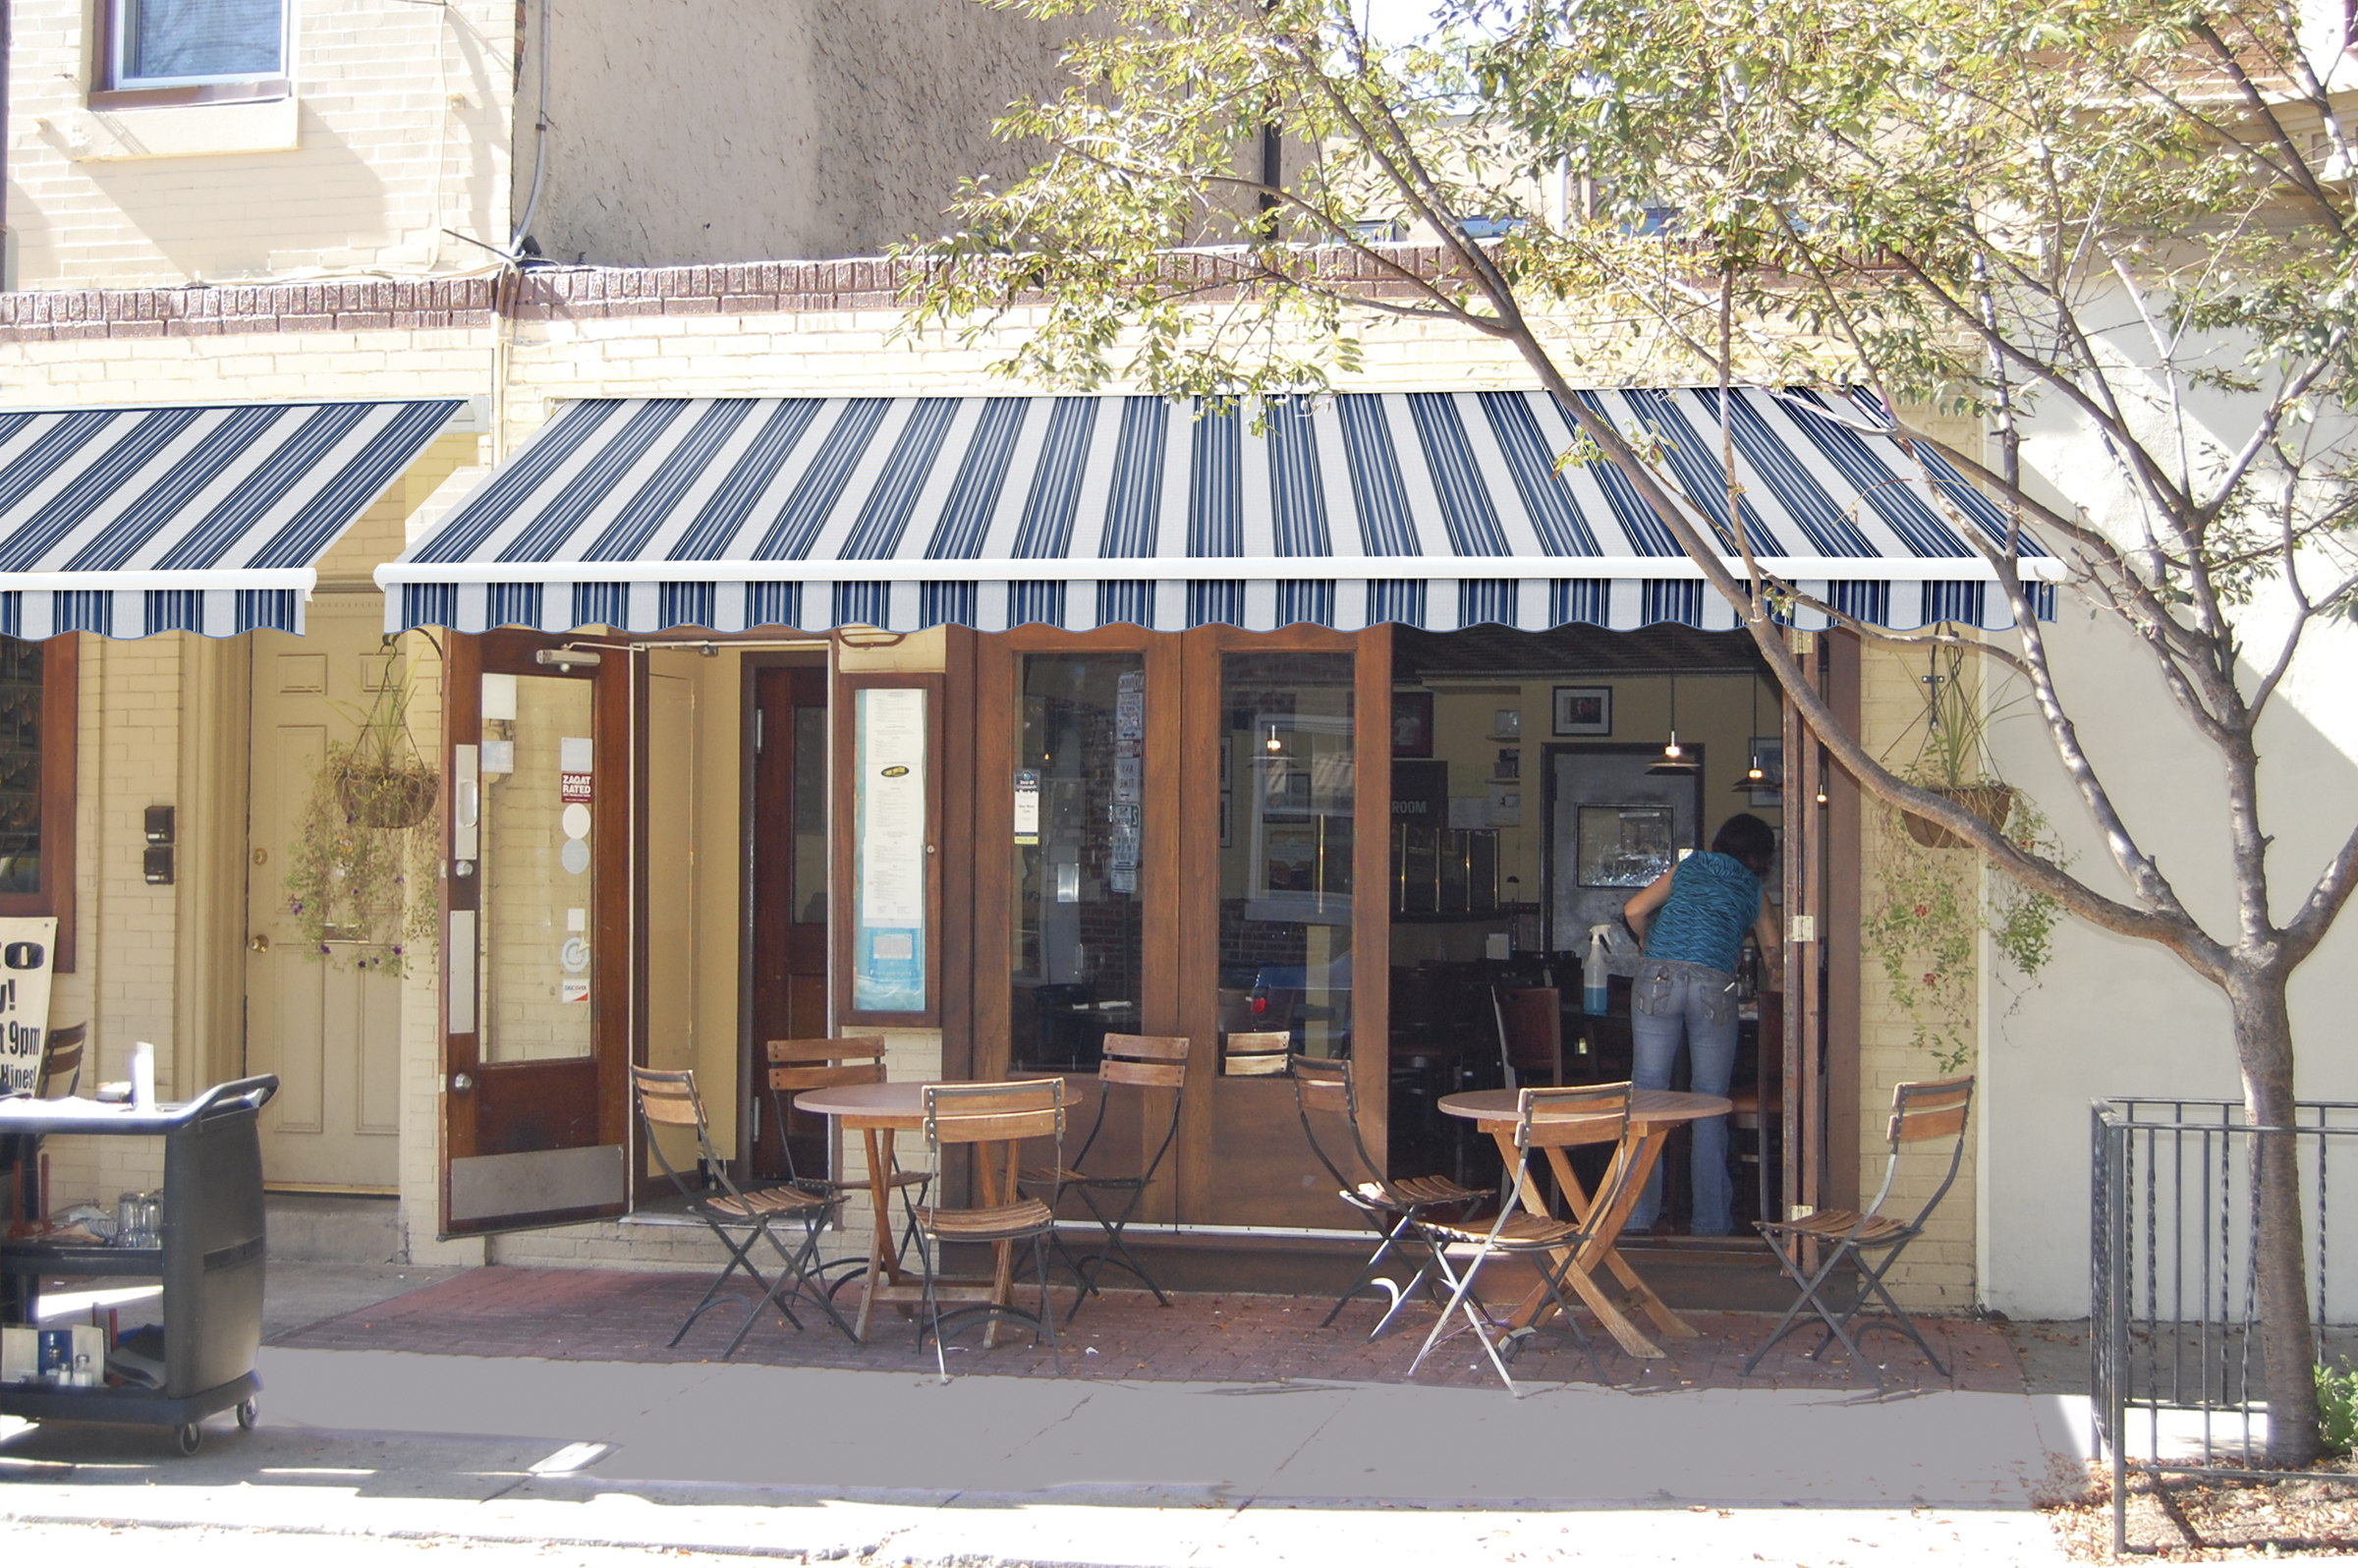 Commercial shade products - retractable awnings